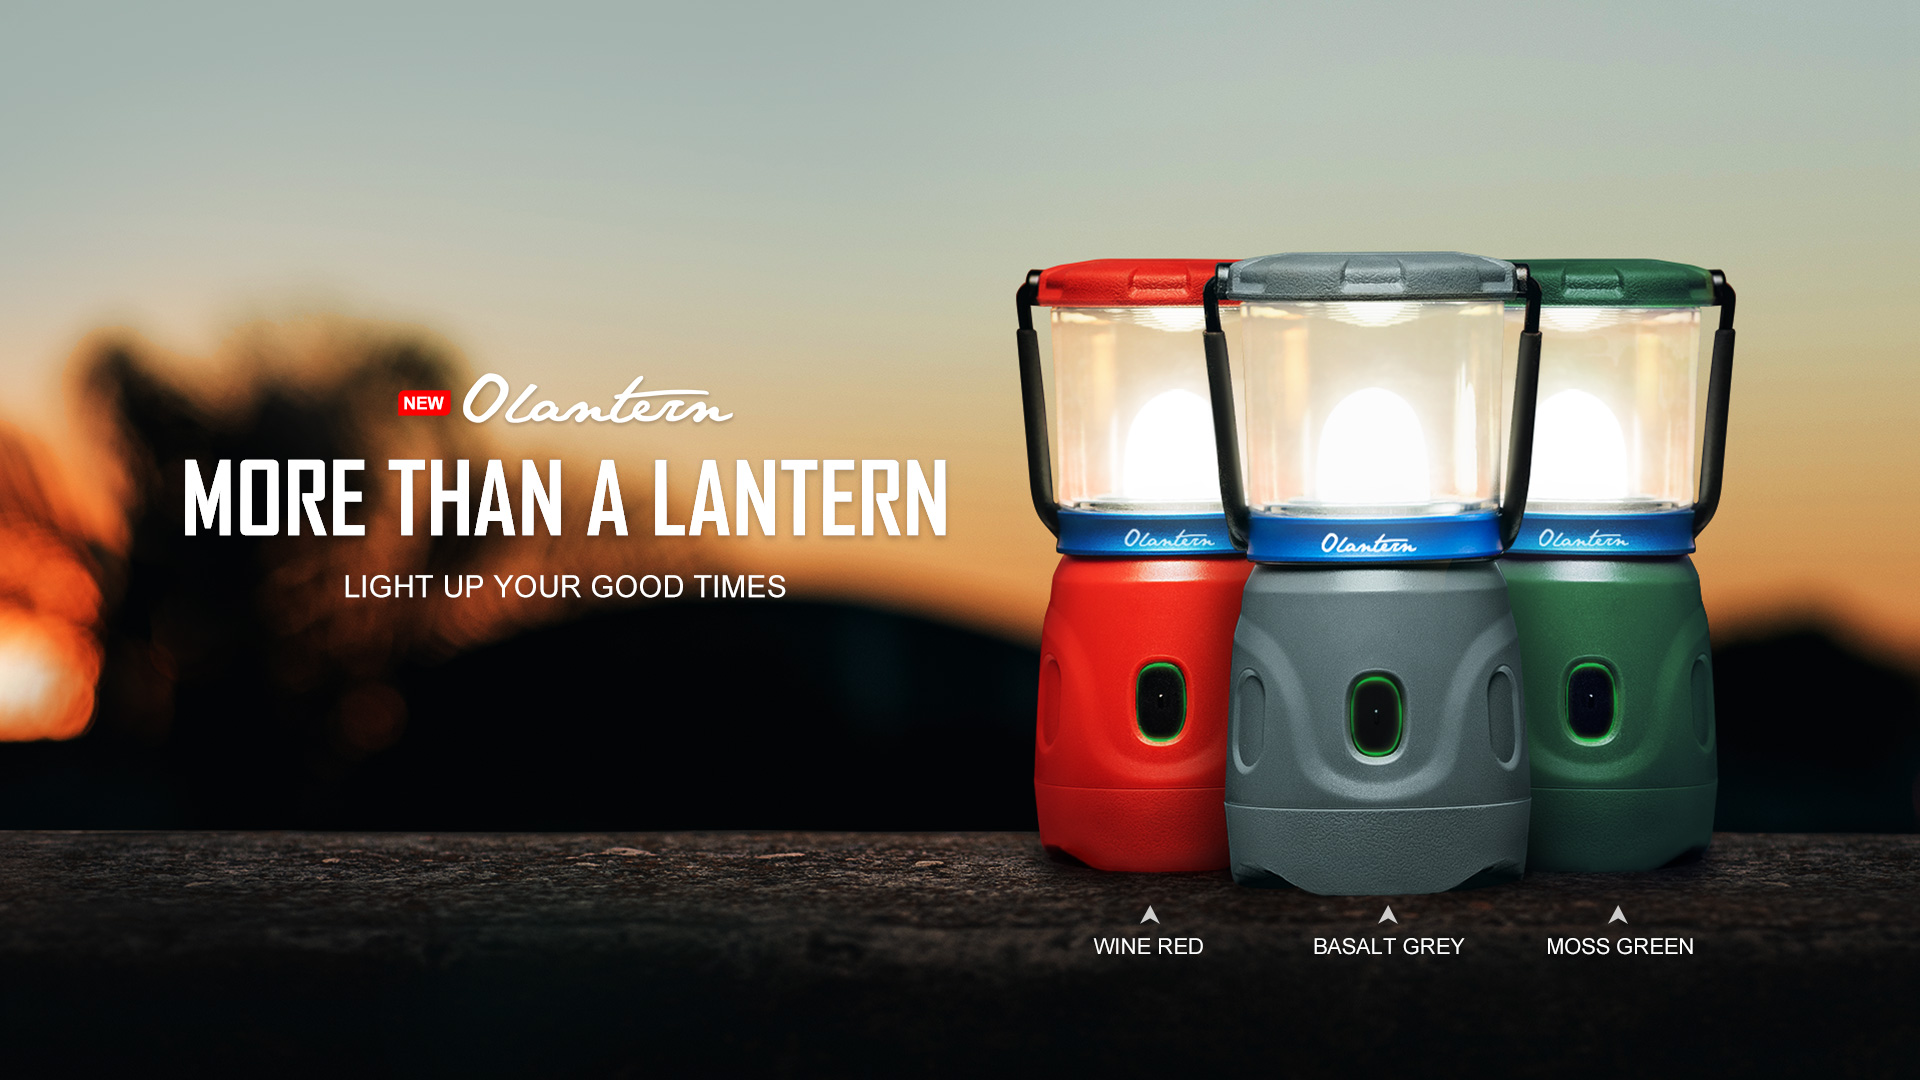 Olantern Rechargeable Camping Lights